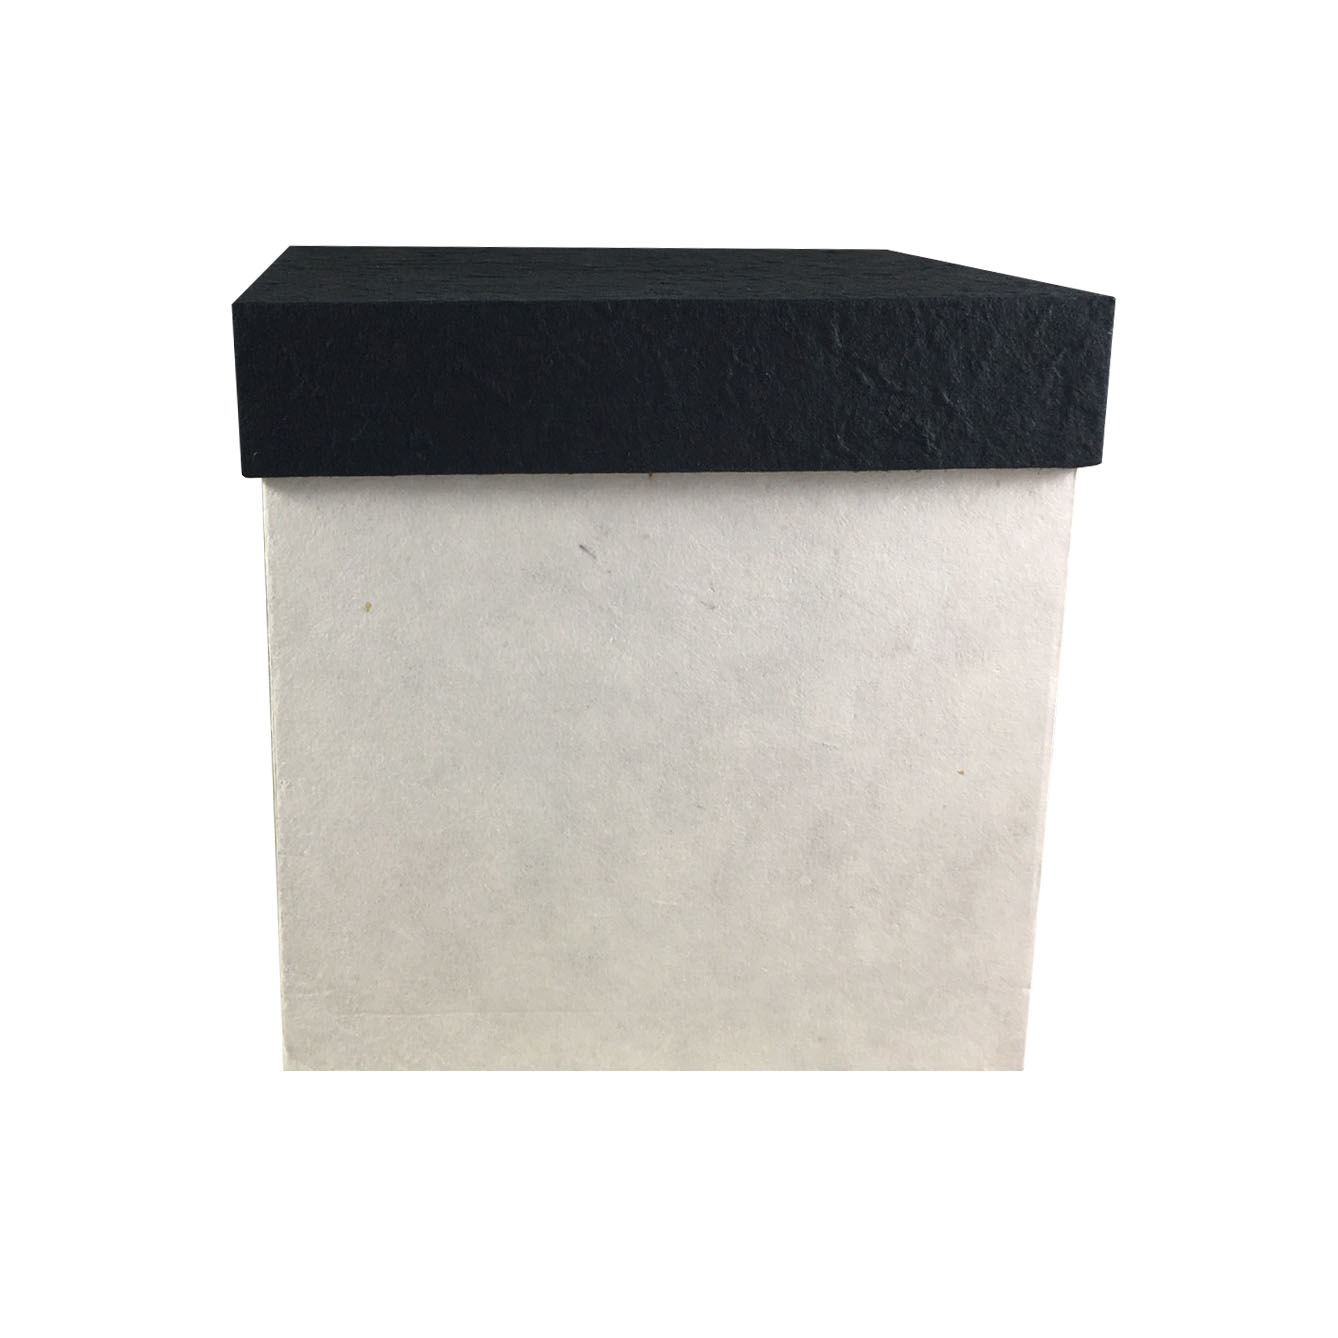 Large mulberry paper box with black lid